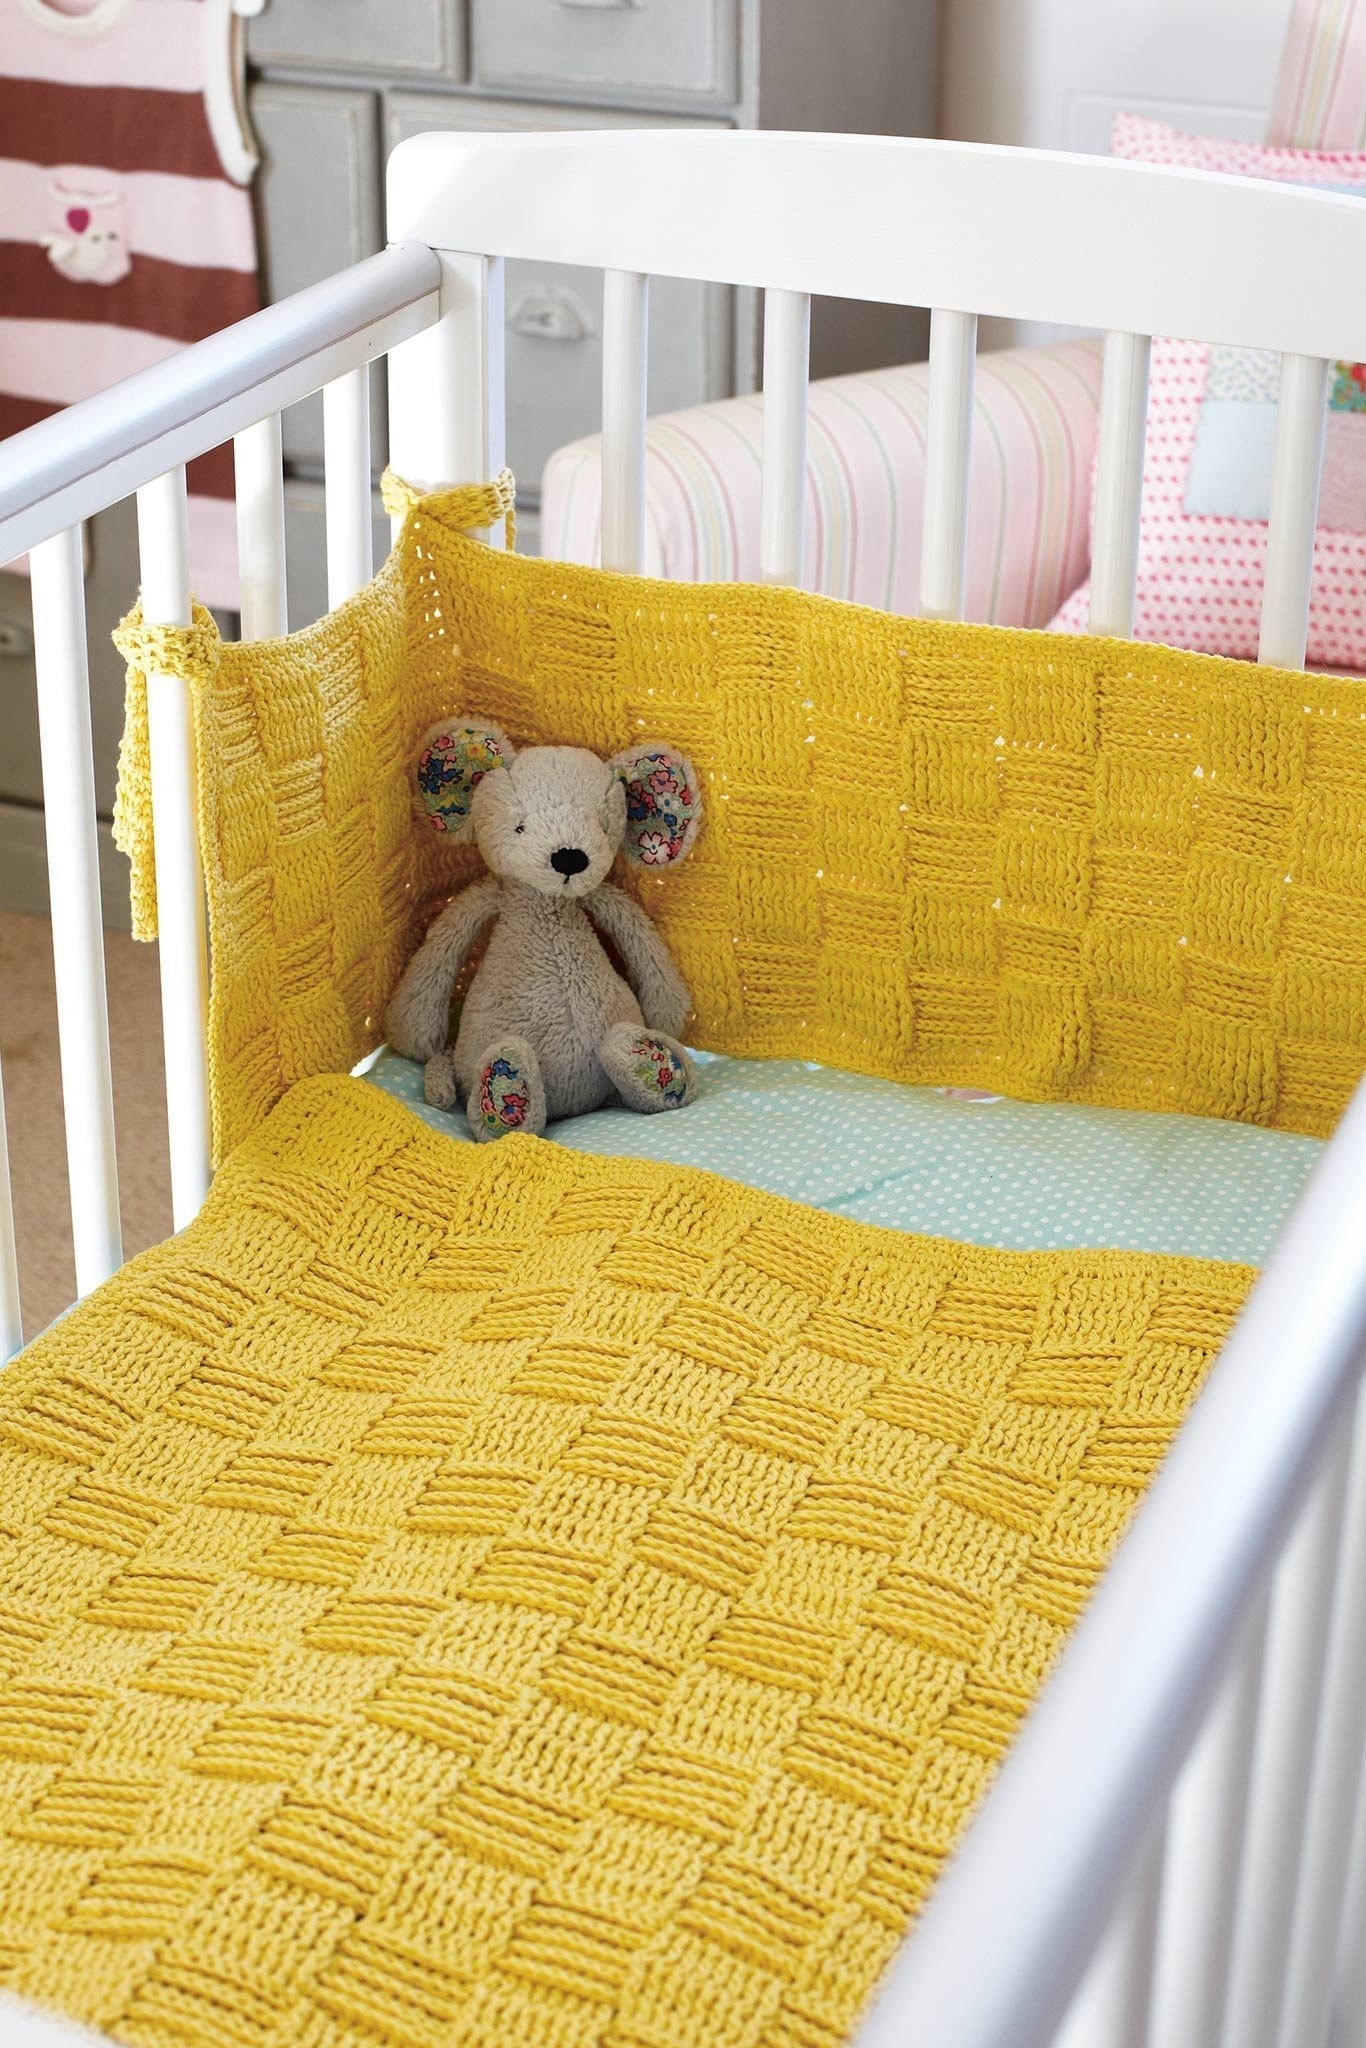 Baby Blanket And Cot Bumper Crochet Patterns | The ...